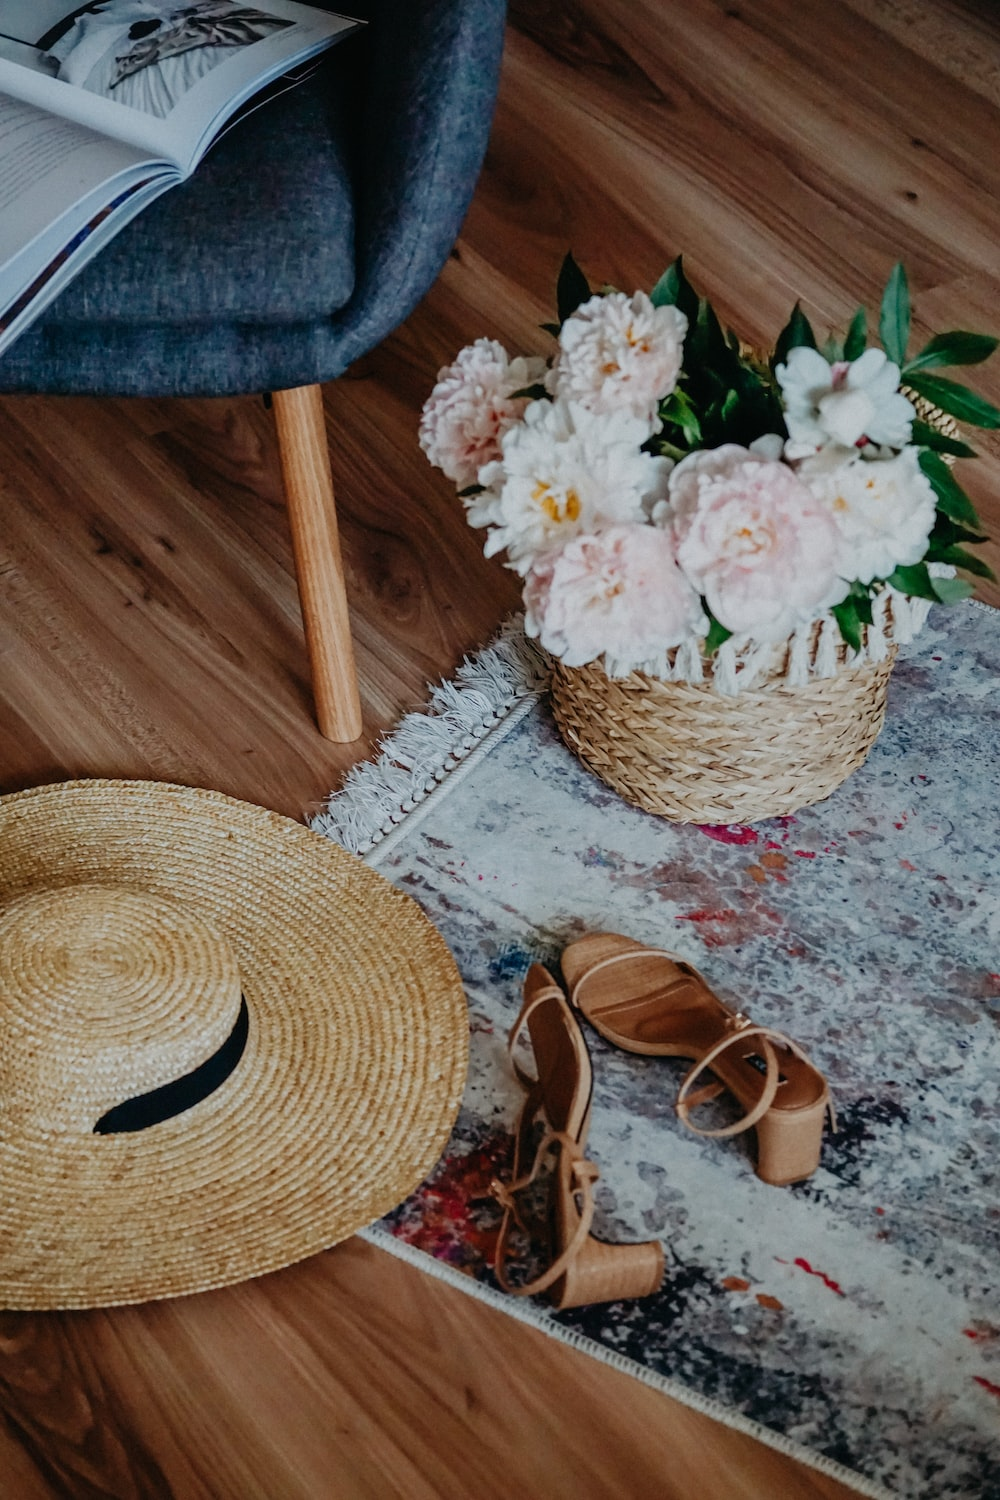 brown straw hat beside white flowers on brown wooden table